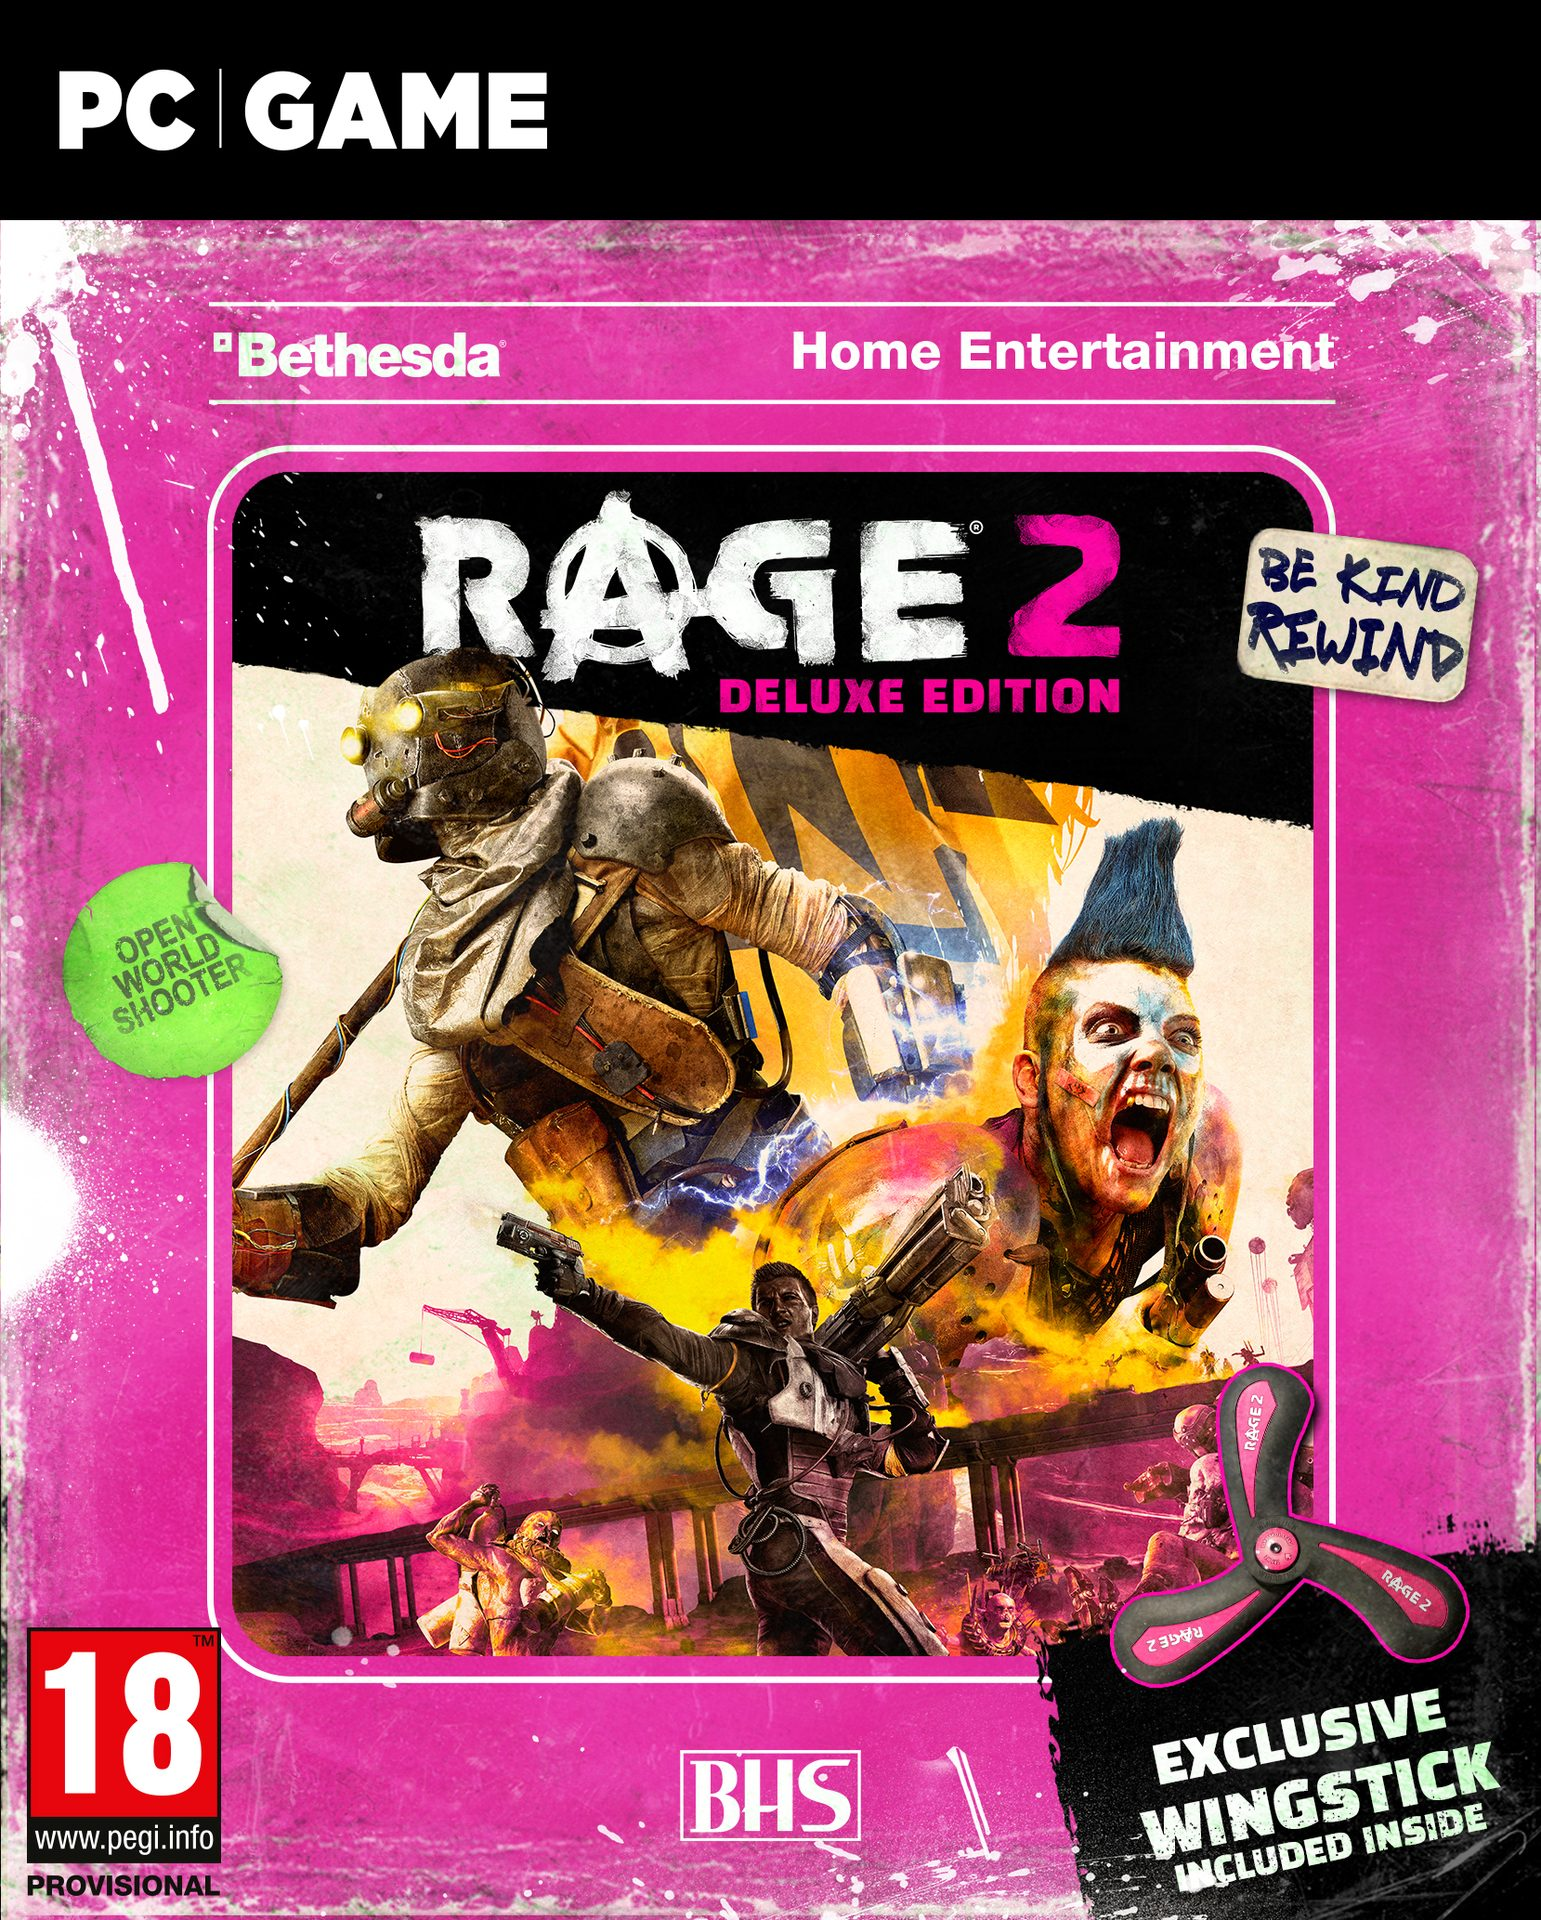 RAGE 2 - Wingstick Deluxe Edition (PC)